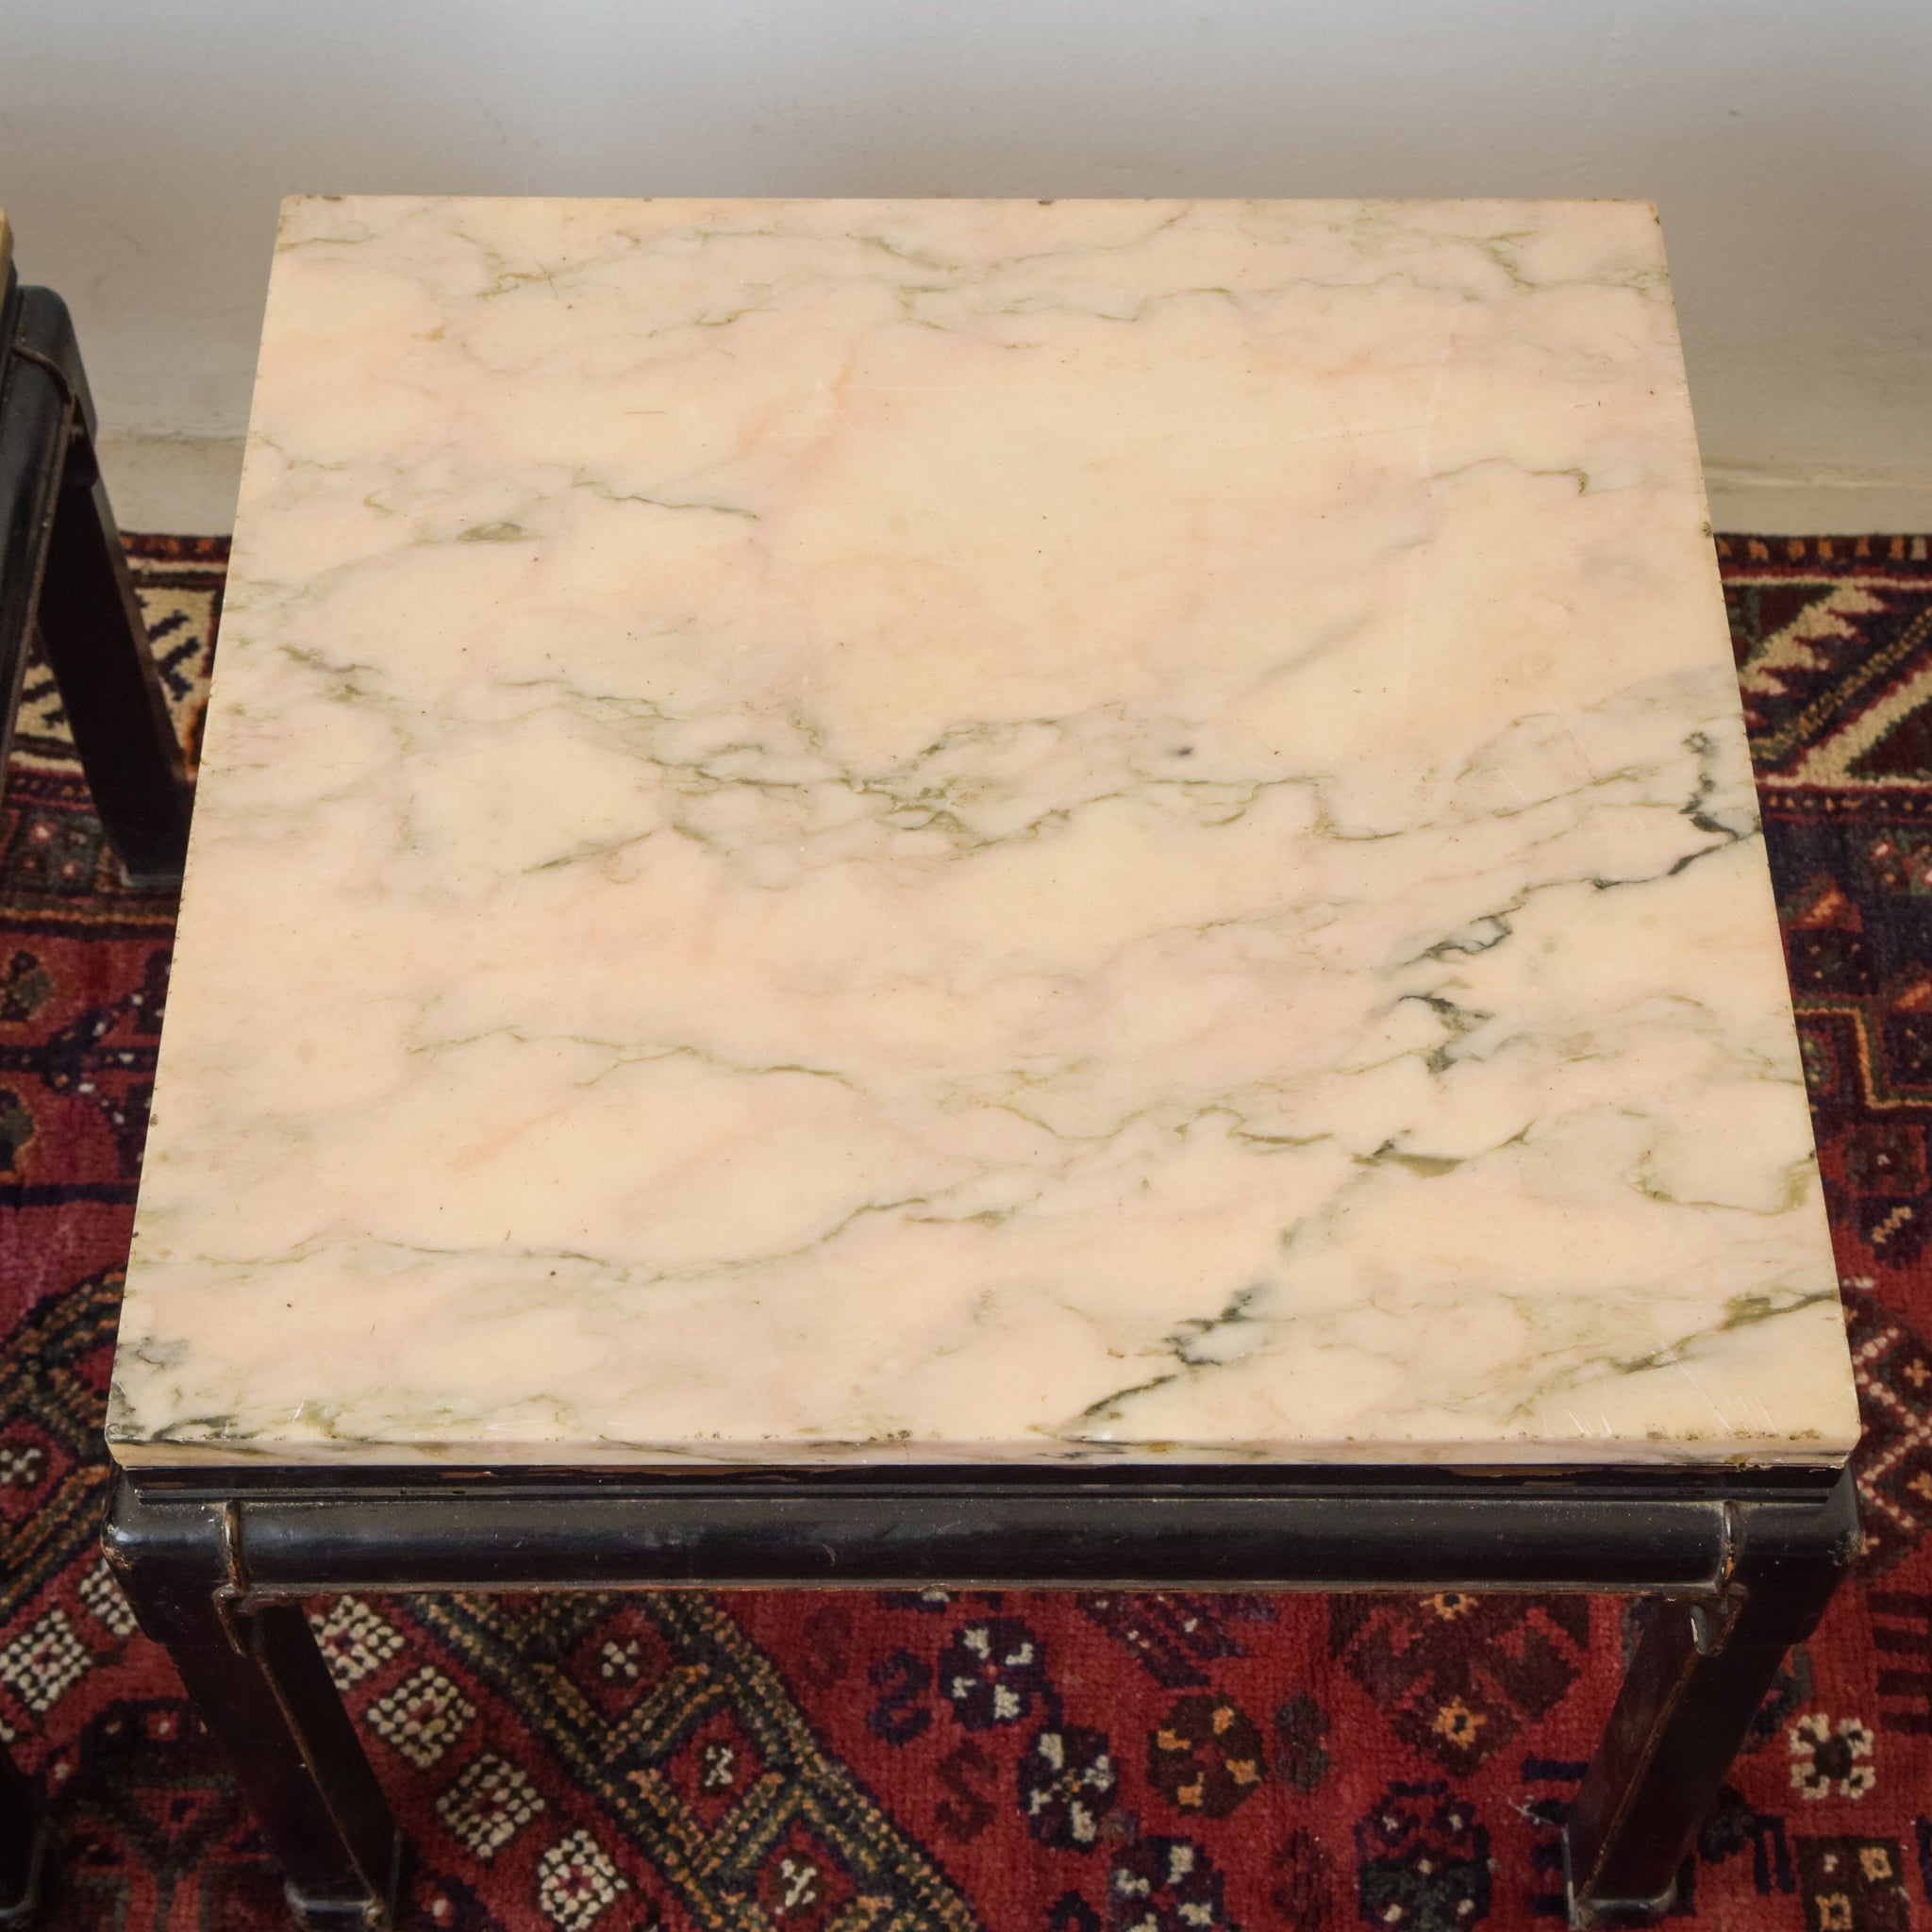 Pair of High Quality Chinese Style Lacquered 19th/20th century Marble Topped Tables